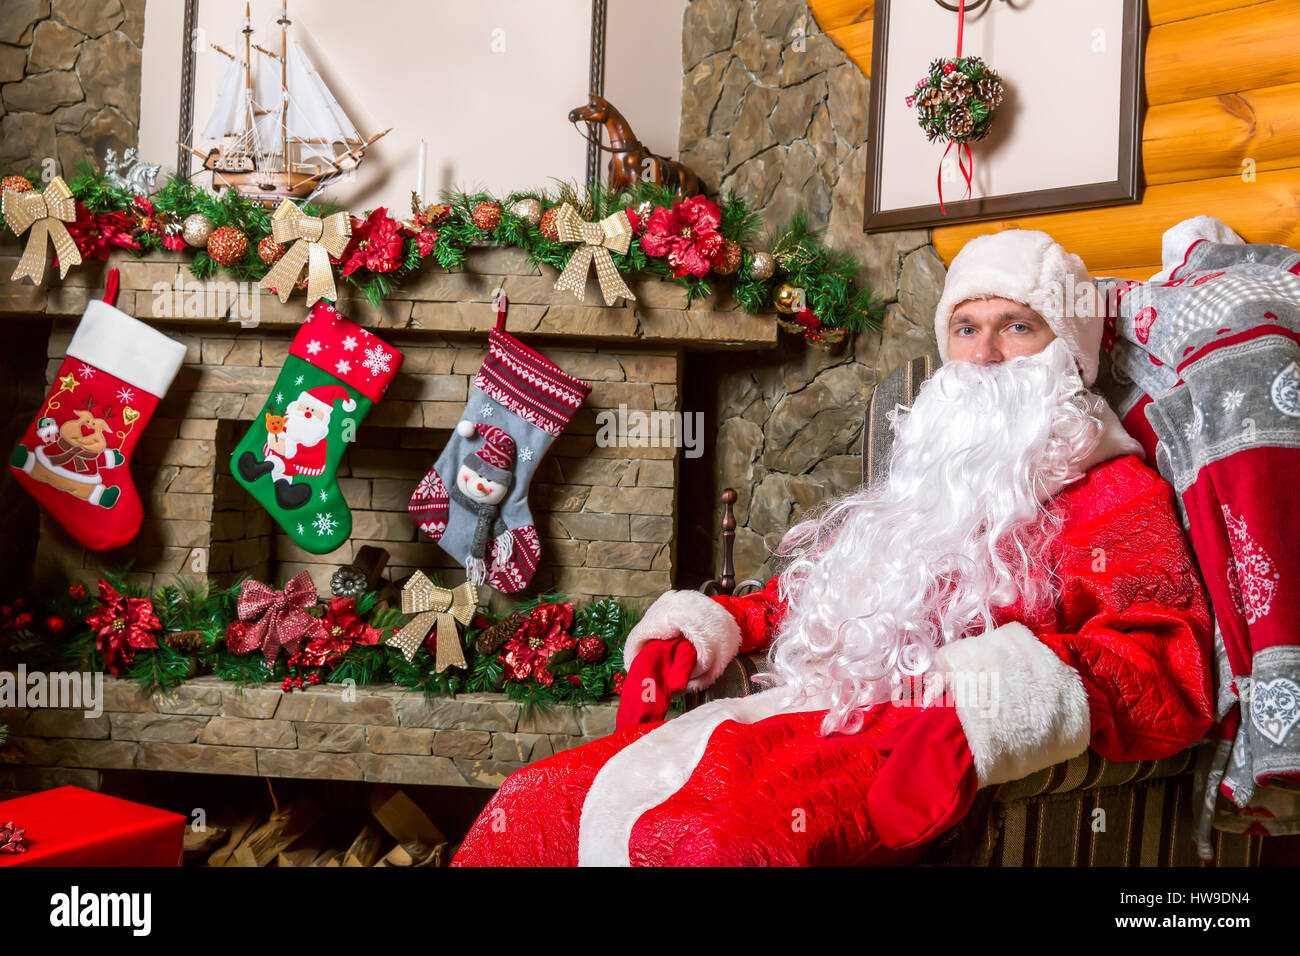 bearded santa claus sitting in a chair gift boxes fireplace and decorated christmas tree on background